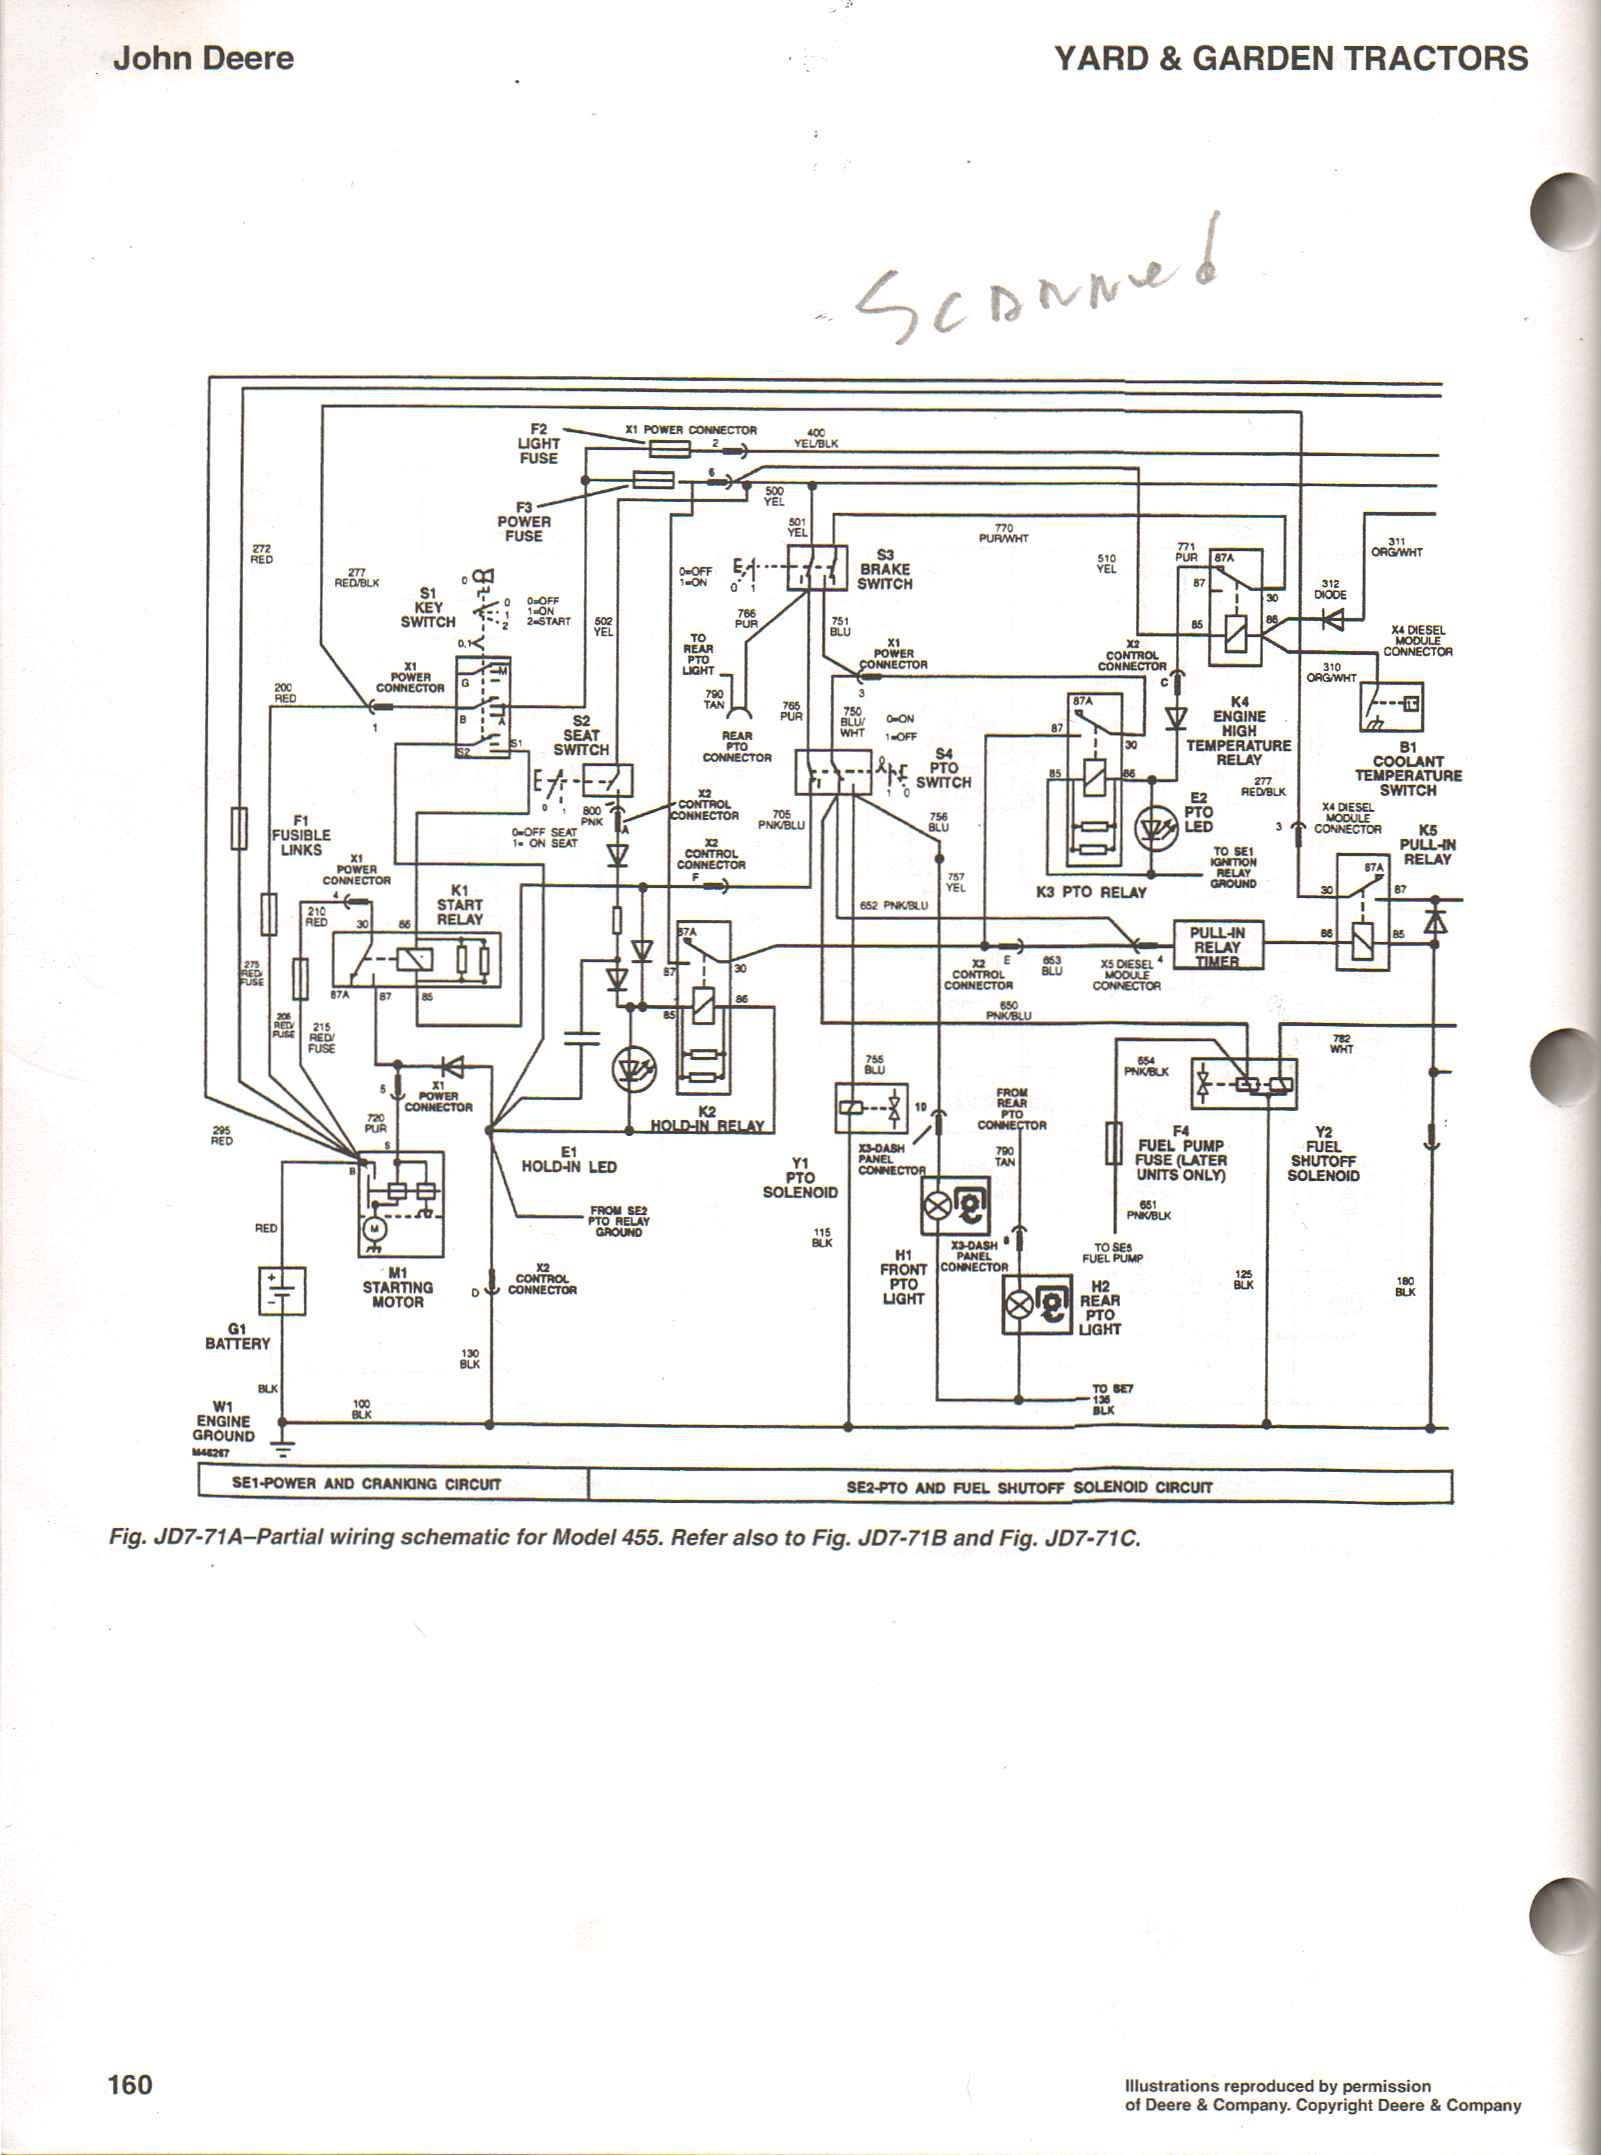 No PTO on my 455 | My Tractor Forum John Deere Wiring Diagram on